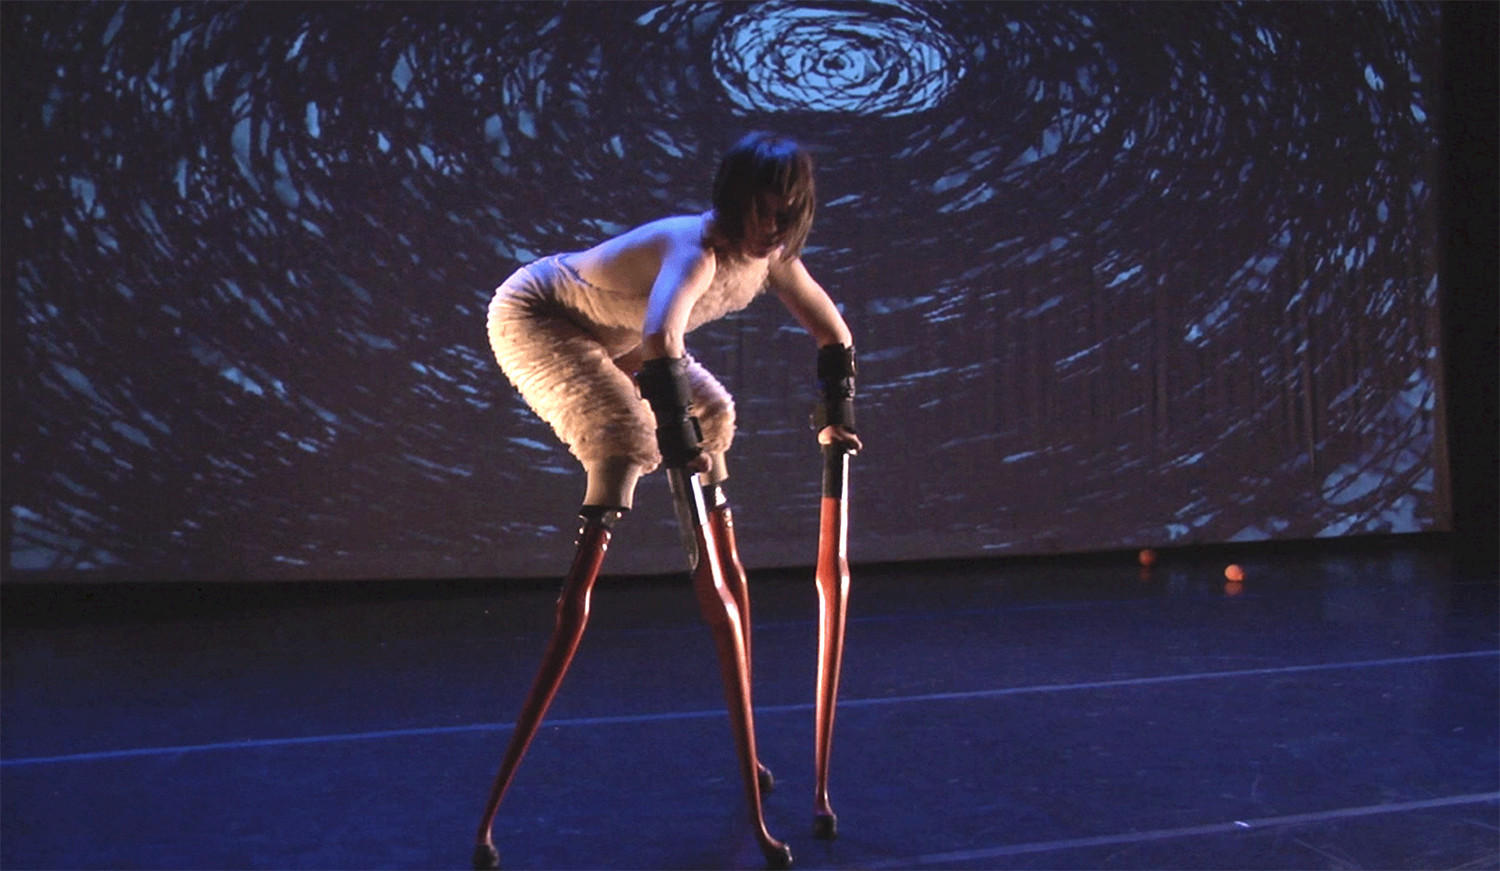 Art performance by differently abled artist Lisa Bufano